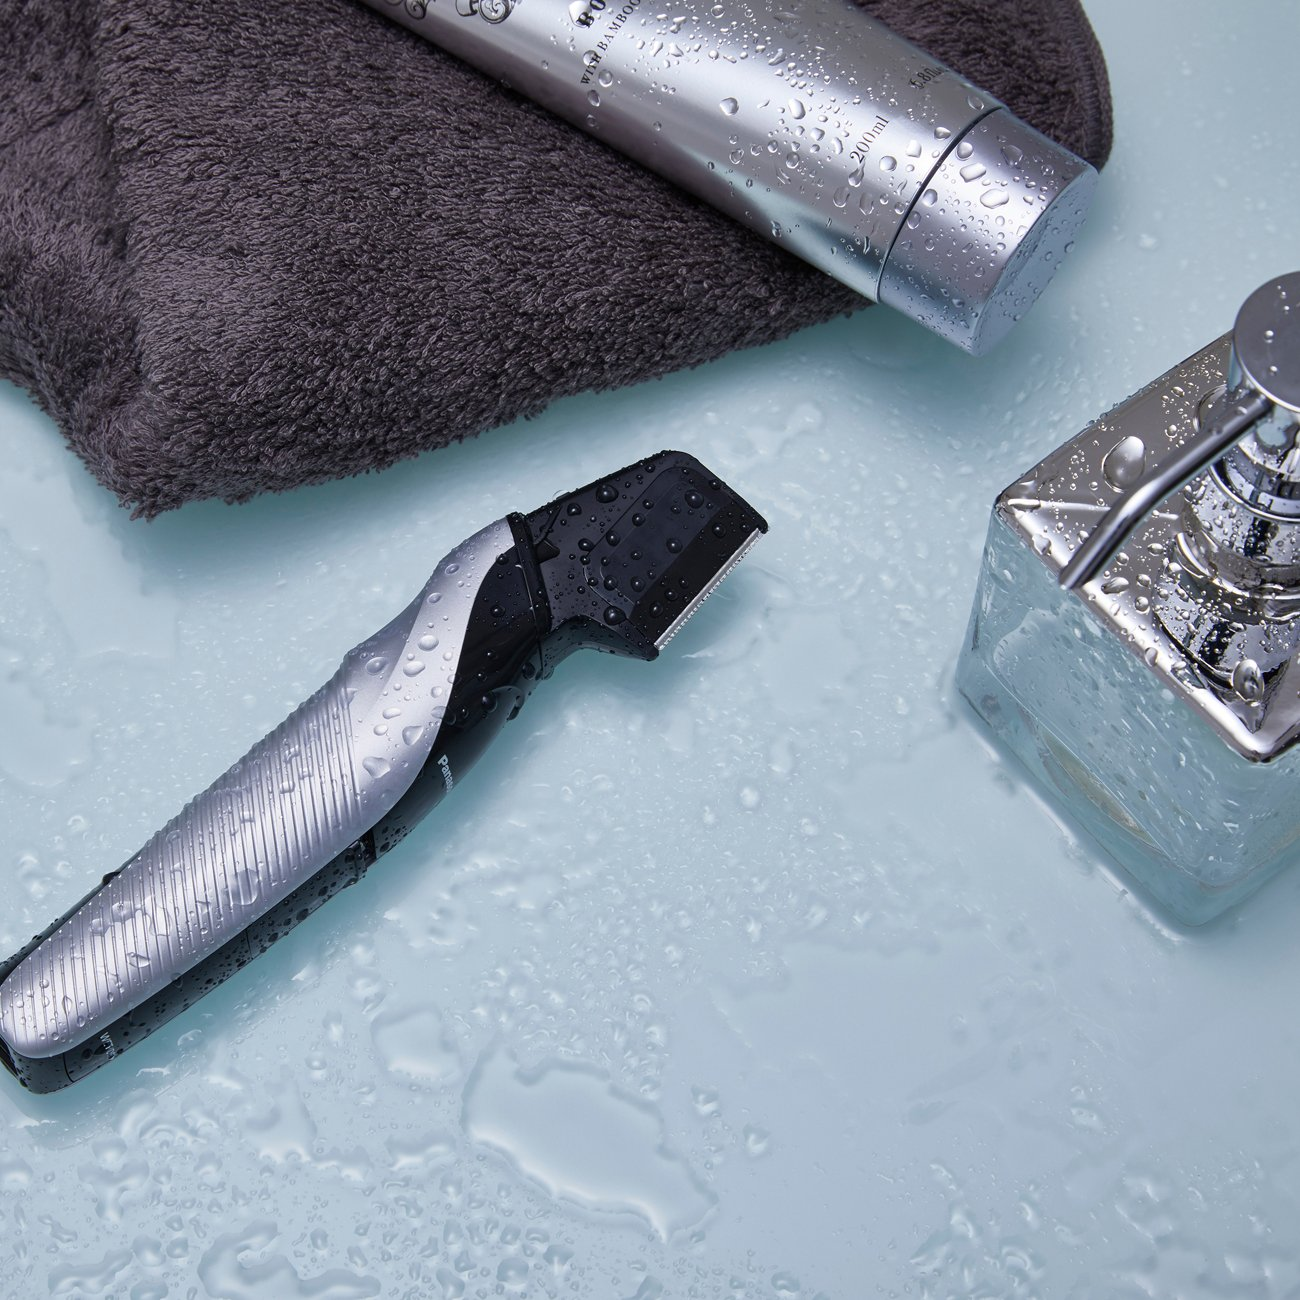 Panasonic Cordless Electric Body Hair Trimmer with Waterproof Design, ER-GK60-S by Panasonic (Image #12)